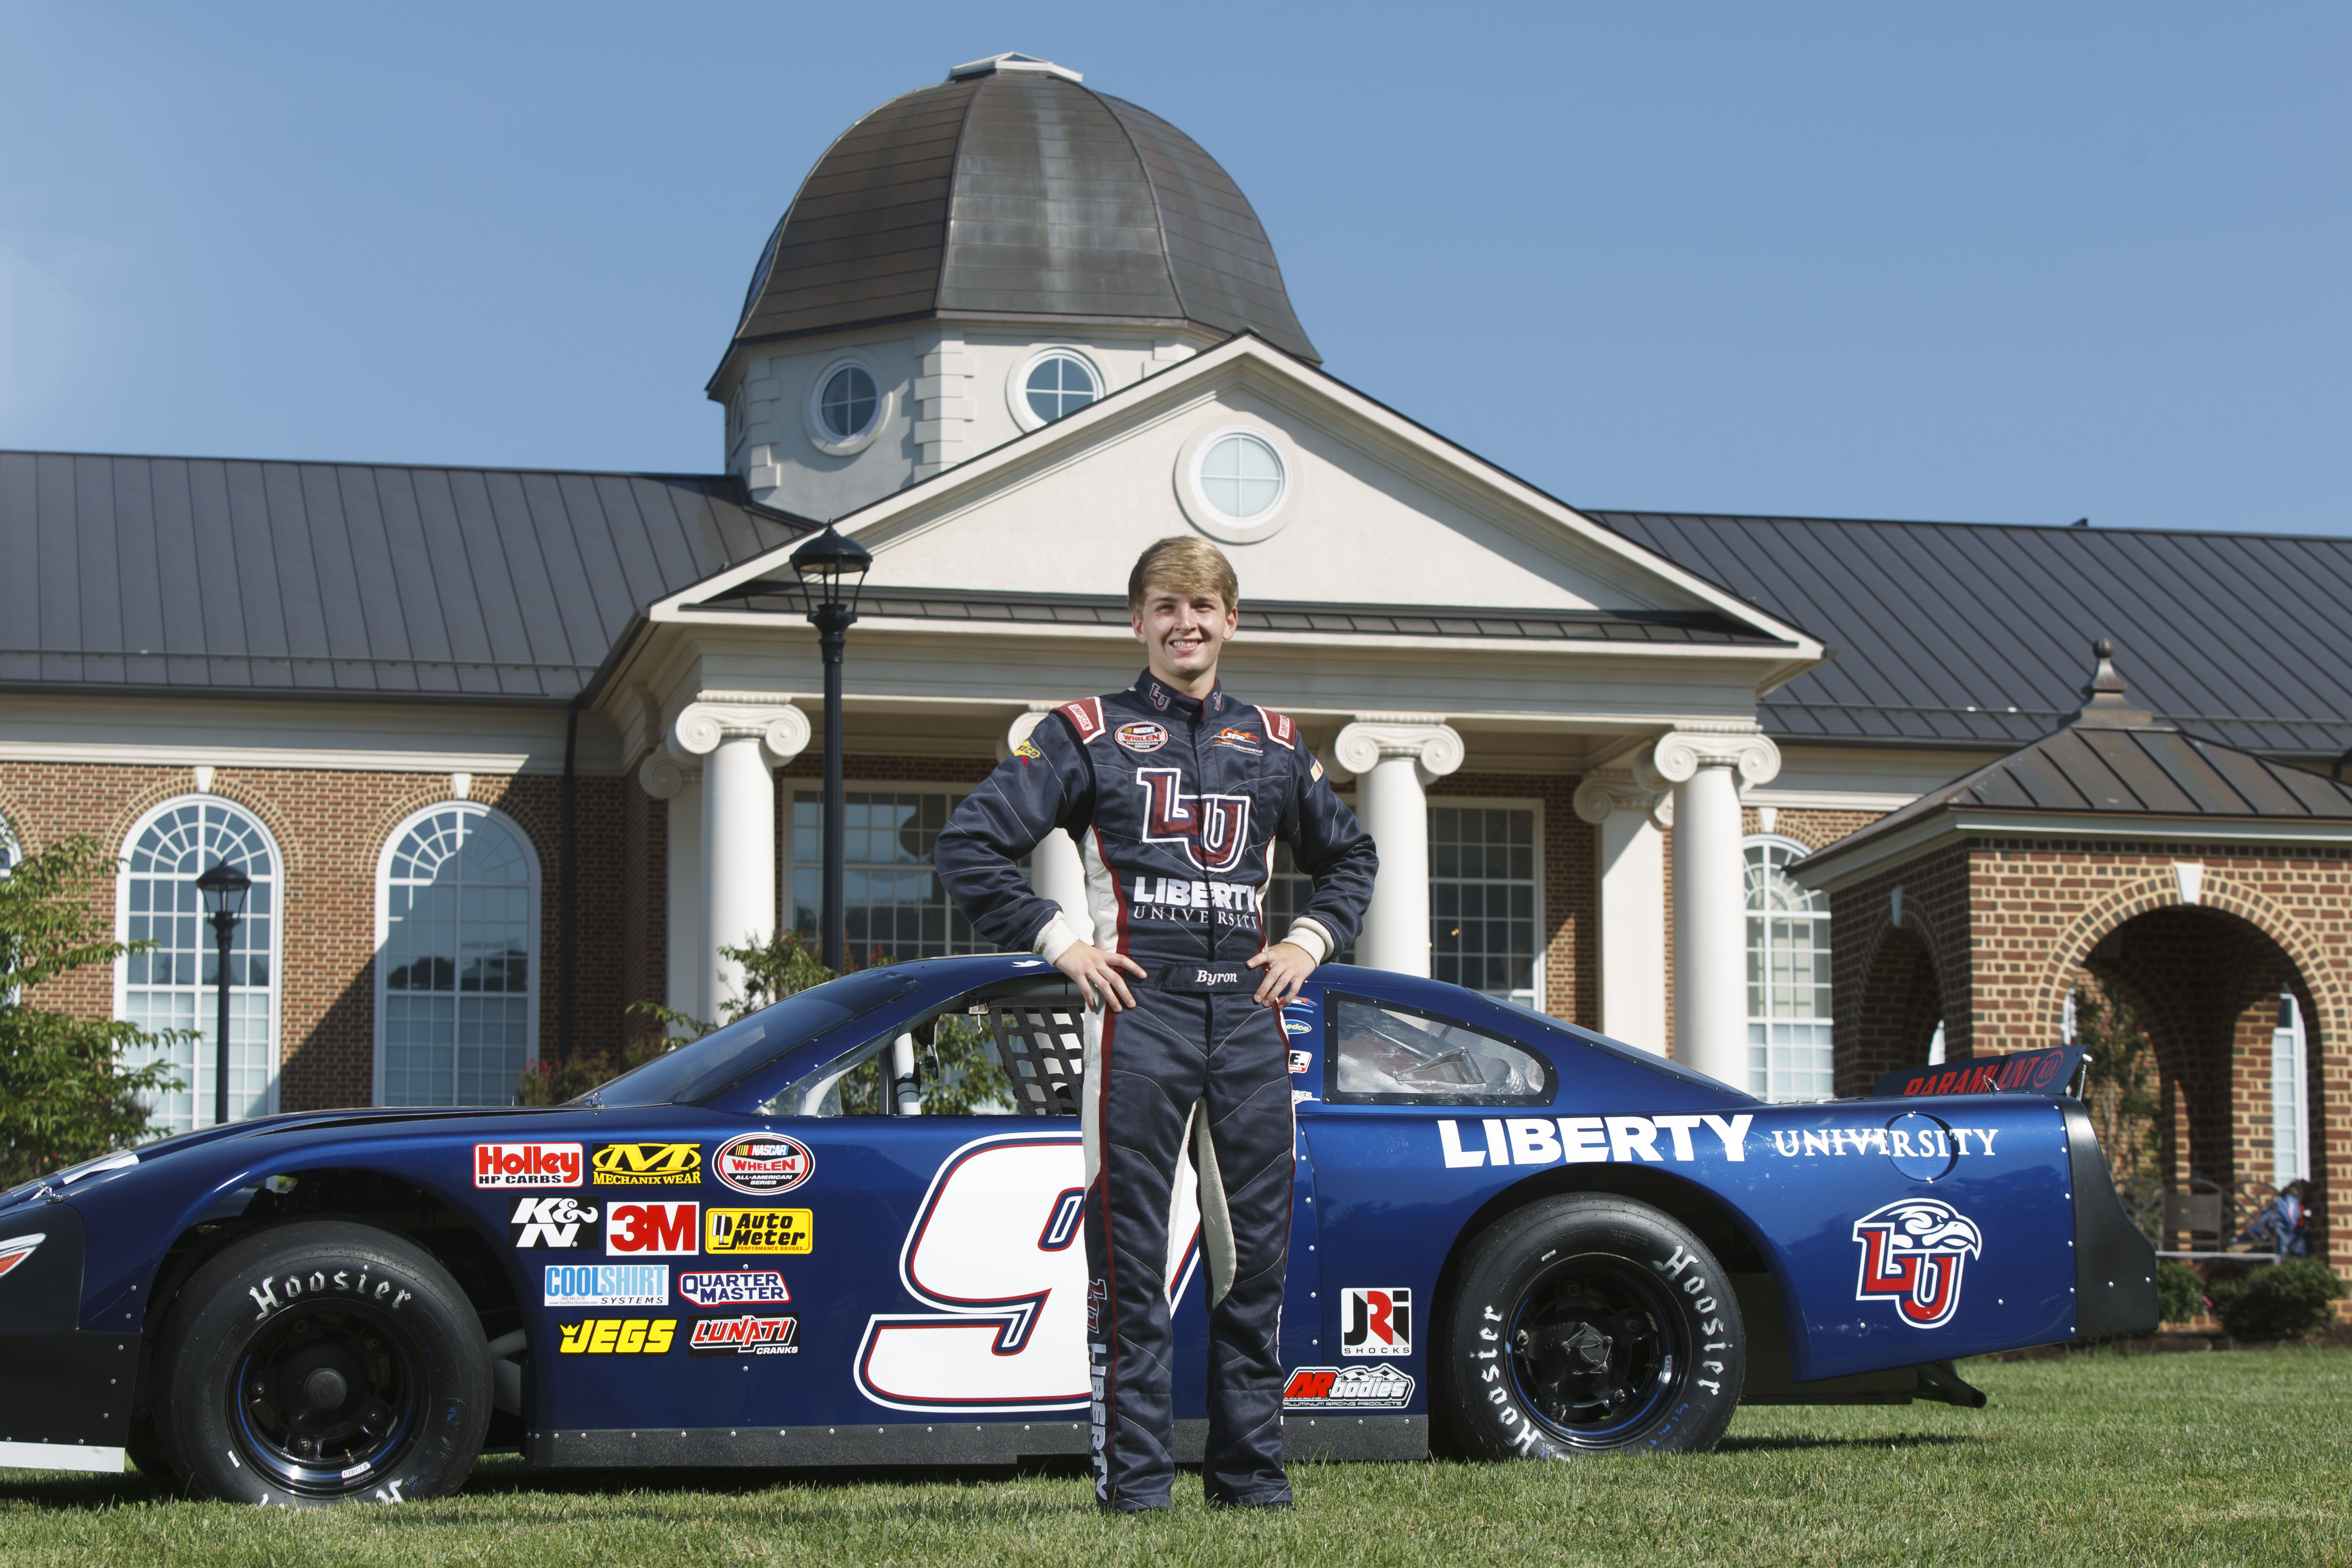 William Byron to Drive Liberty University-Sponsored NASCAR K&N Pro Series and Late Model Cars in ...